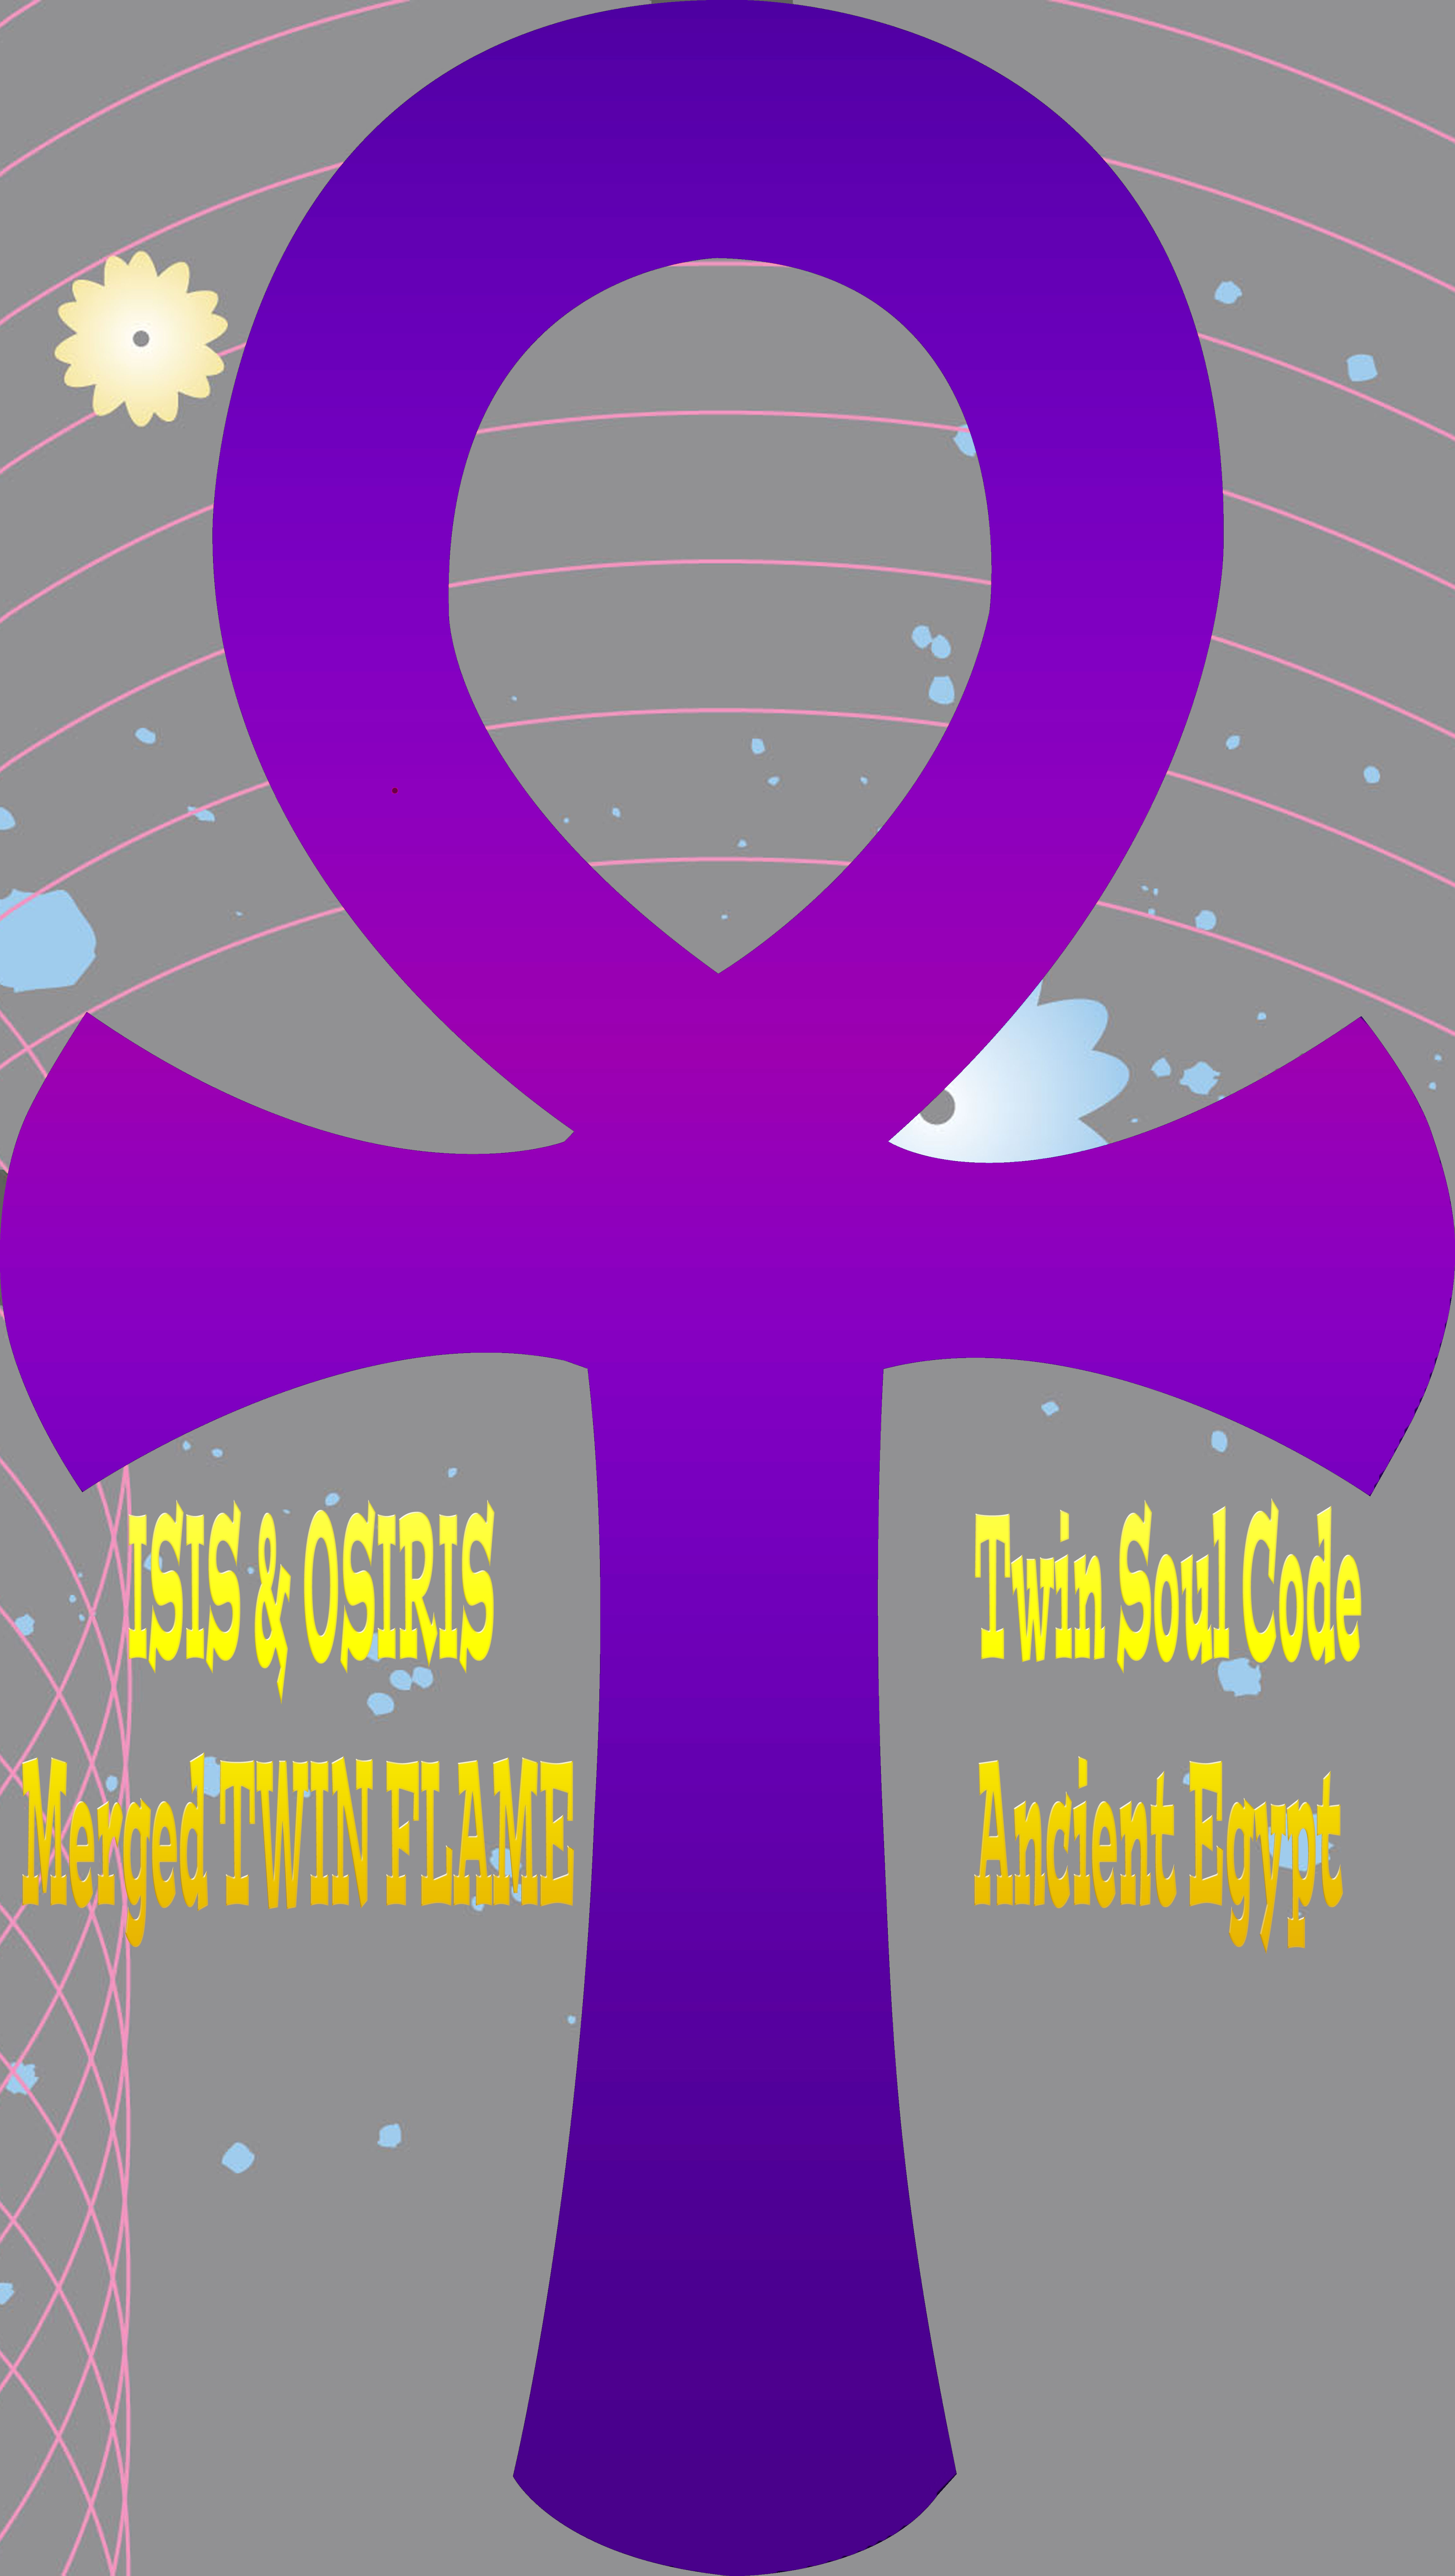 Twin soul flame sexuality and the egyptian ankh 777 garden eden 777 mgp publishing mystery garden biocorpaavc